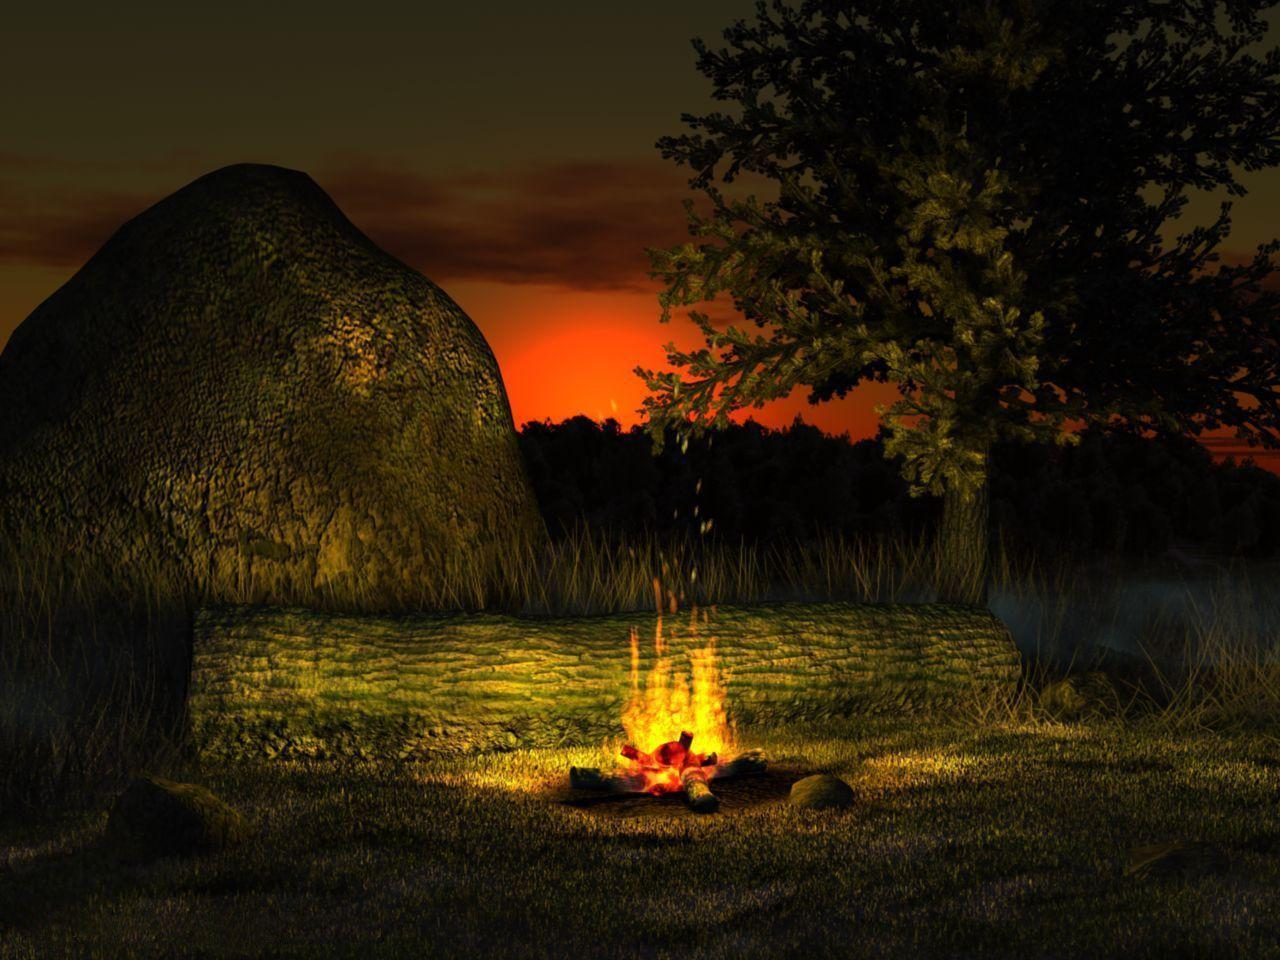 Fireplace Desktop Wallpapers - Wallpaper Cave